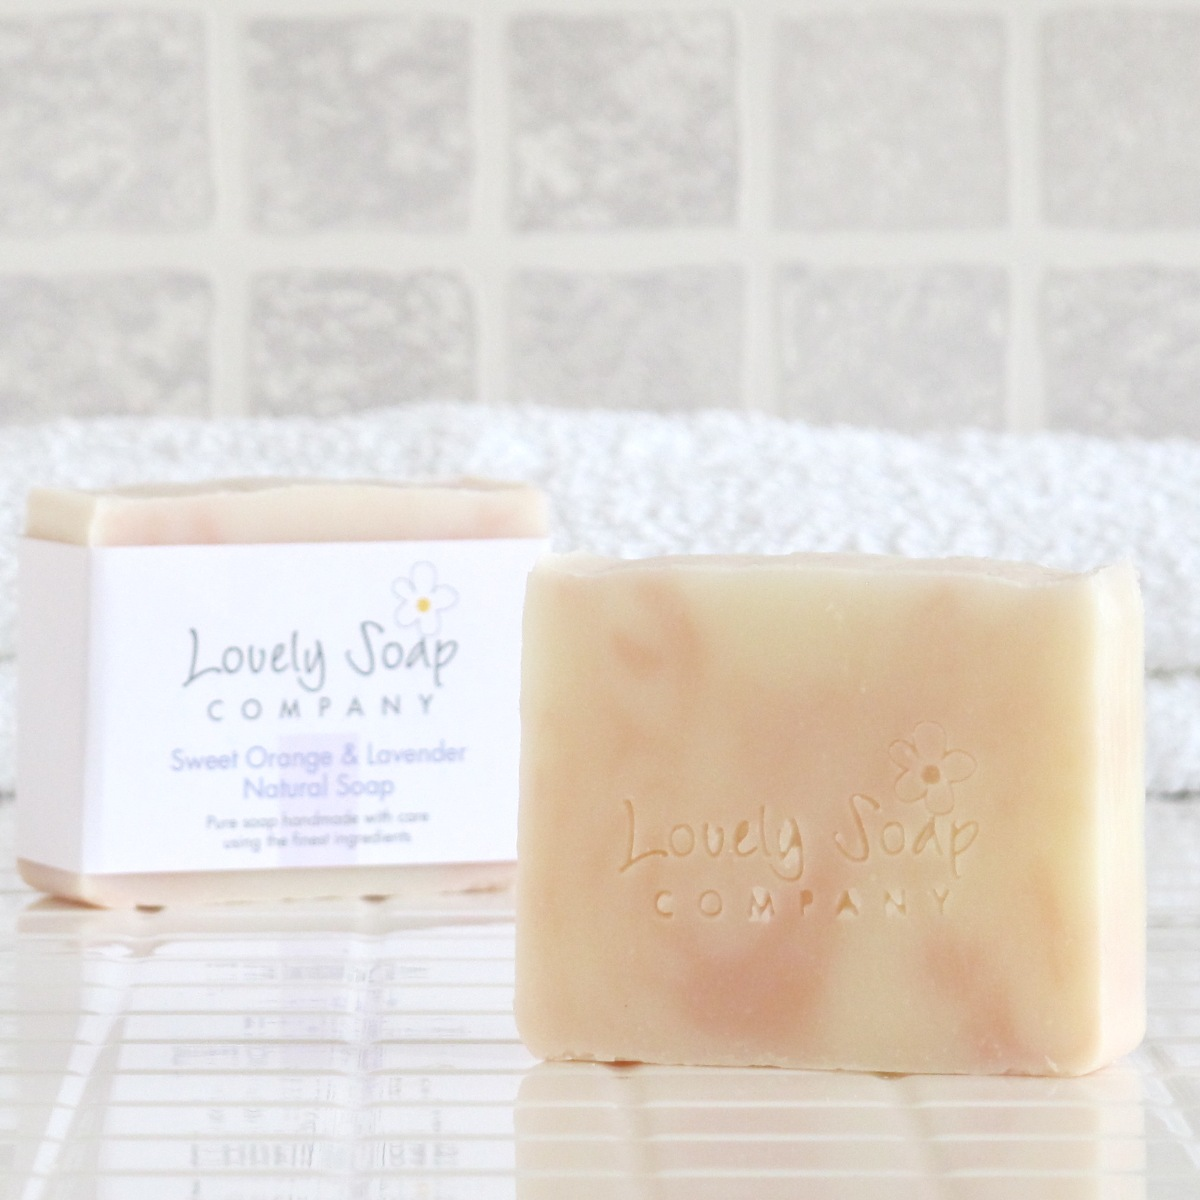 Sweet Orange & Lavender Natural Soap